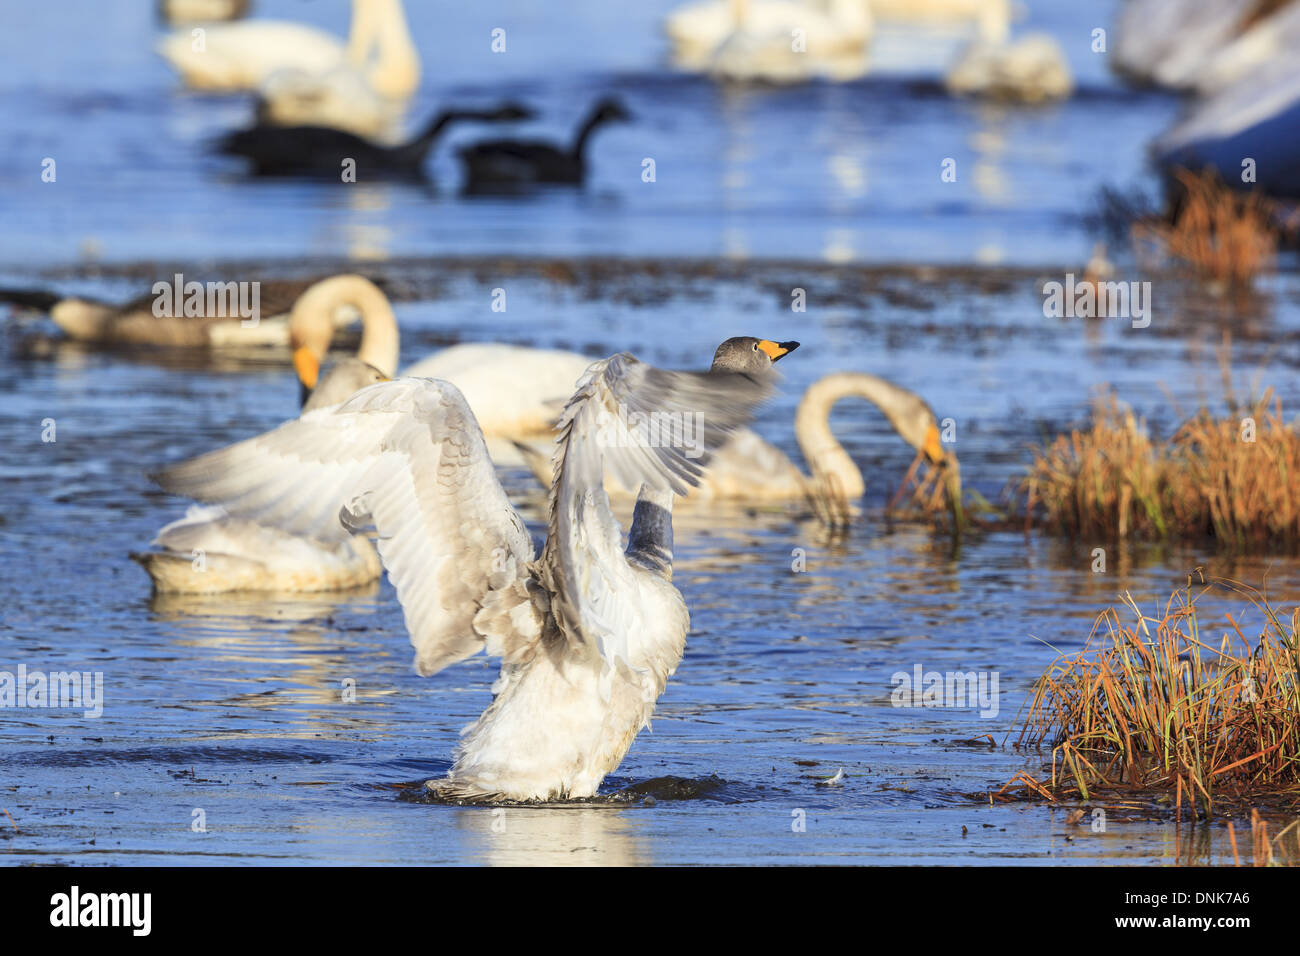 Whooper swan stretching its wings on the water - Stock Image